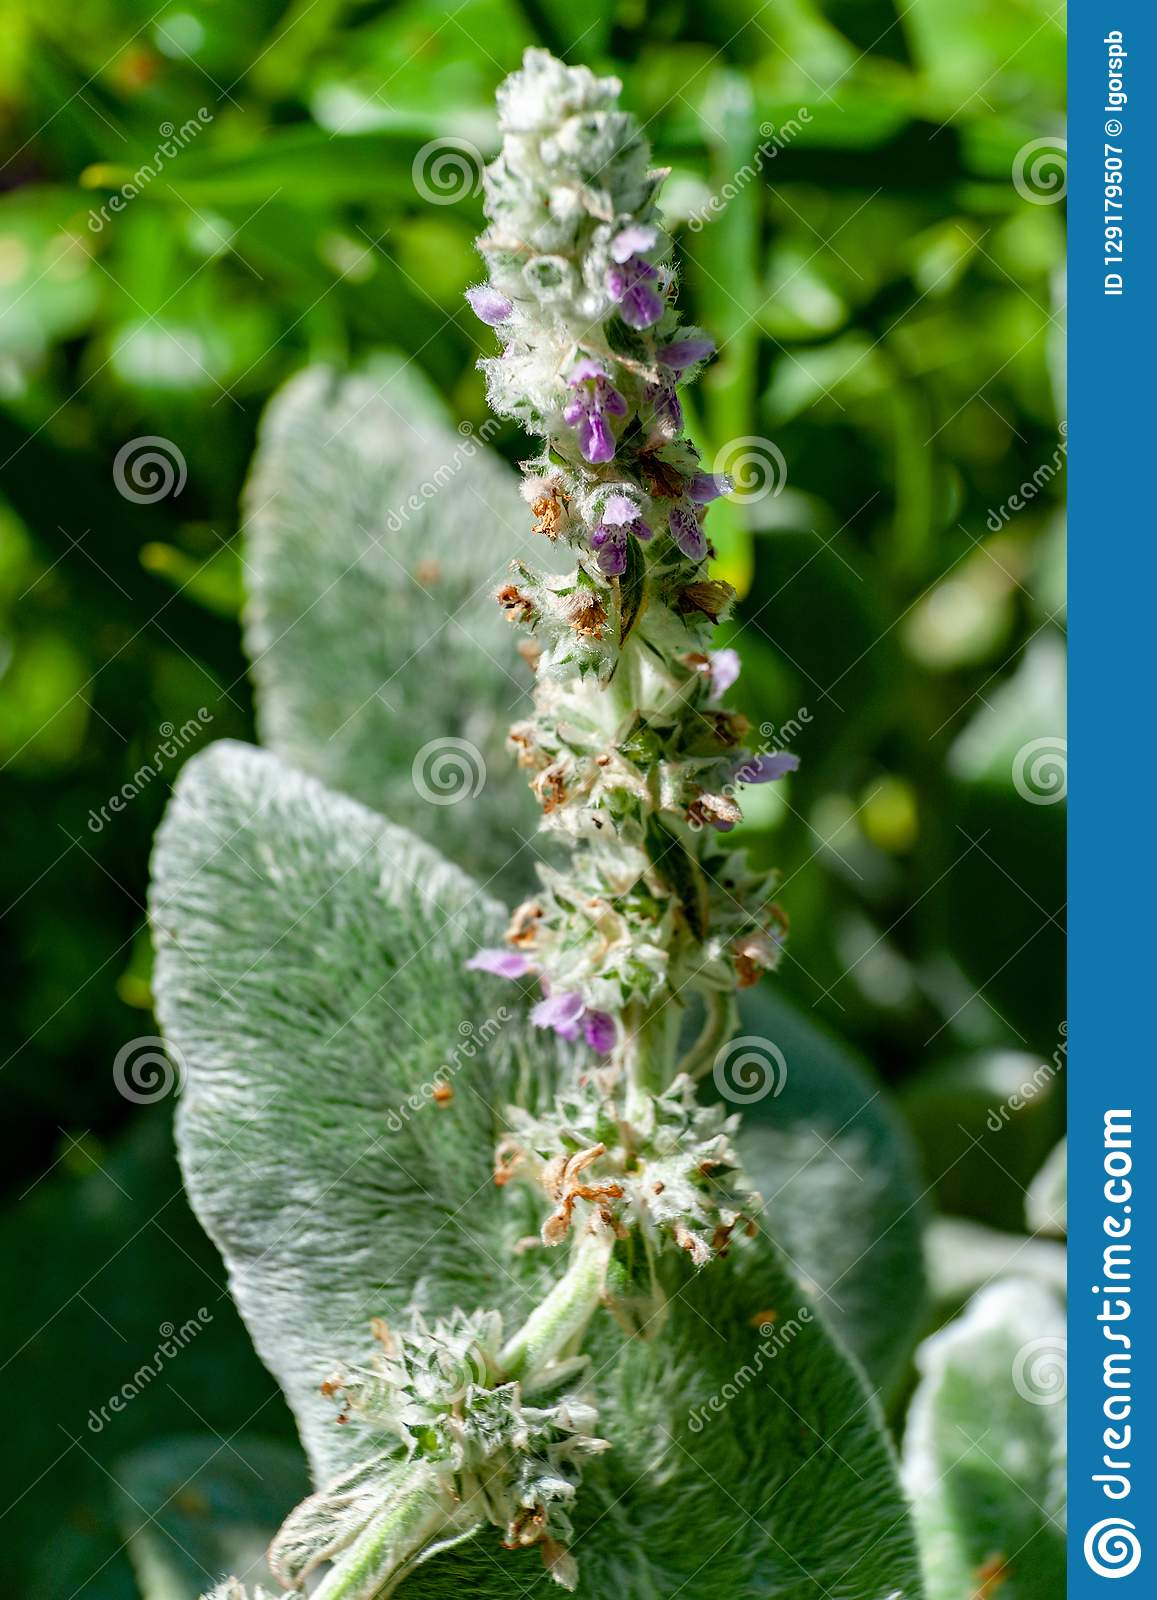 Flowers of blossoming Stachys byzantina 'Silver Carpet ' (Lamb's Ear). Selective focus with shallow DOF.